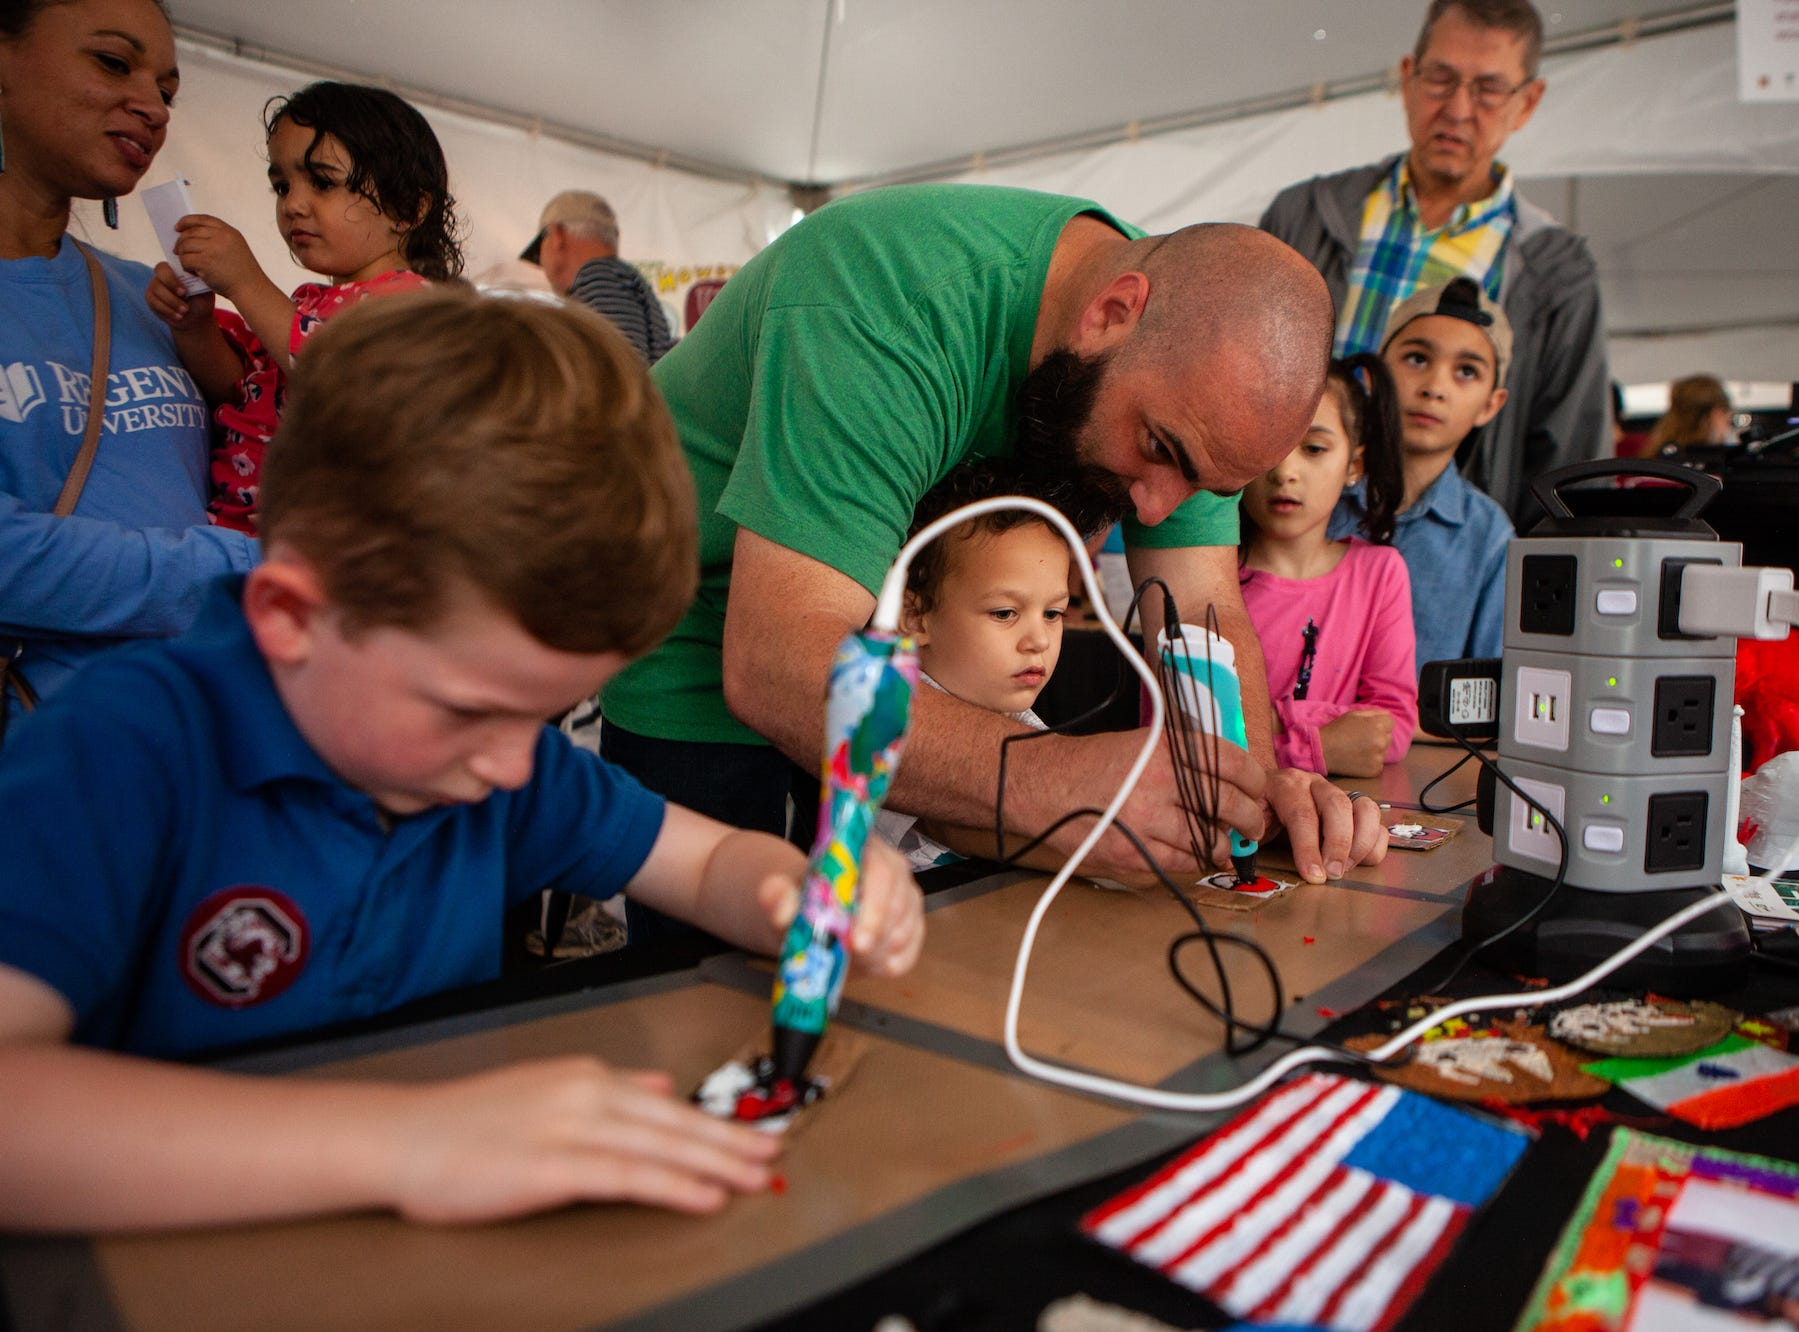 Joshua Thomas and his son, Nehemiah, 4, create art with a handheld 3D printer by Artistphere in Greenville on Saturday, May 11, 2019.